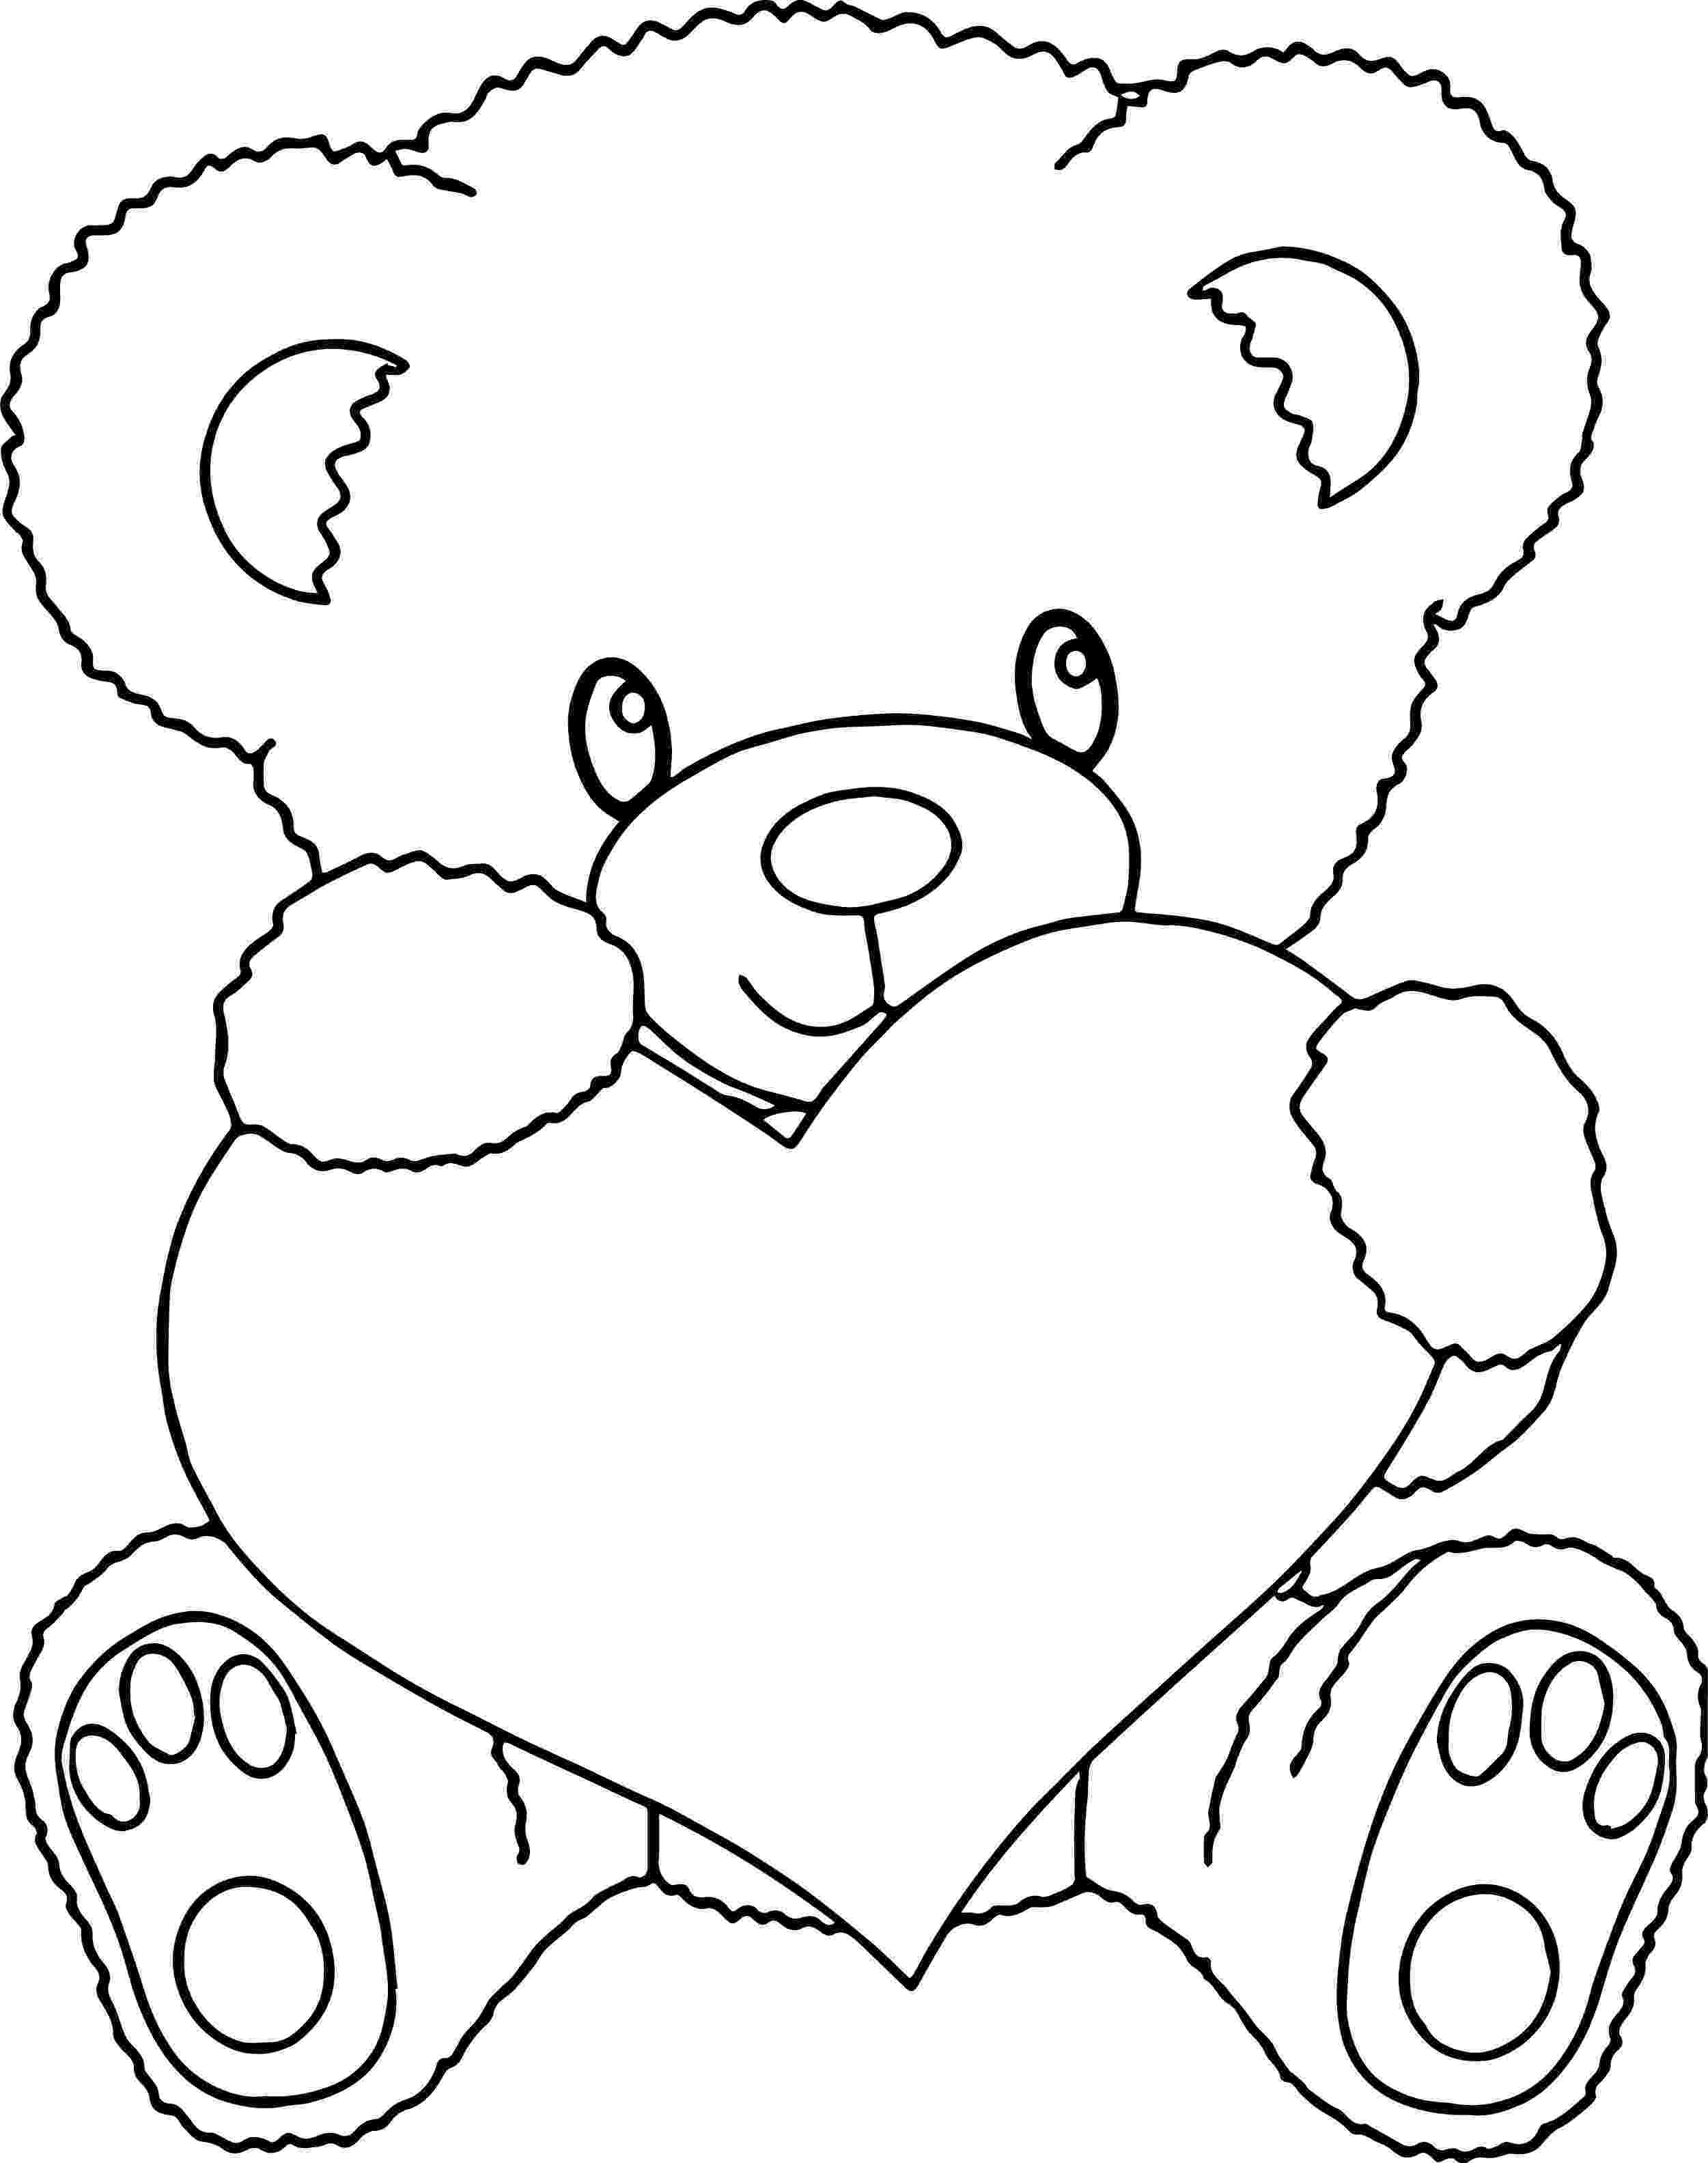 bear with heart valentine39s day coloring pages cupid with bow heart bear with